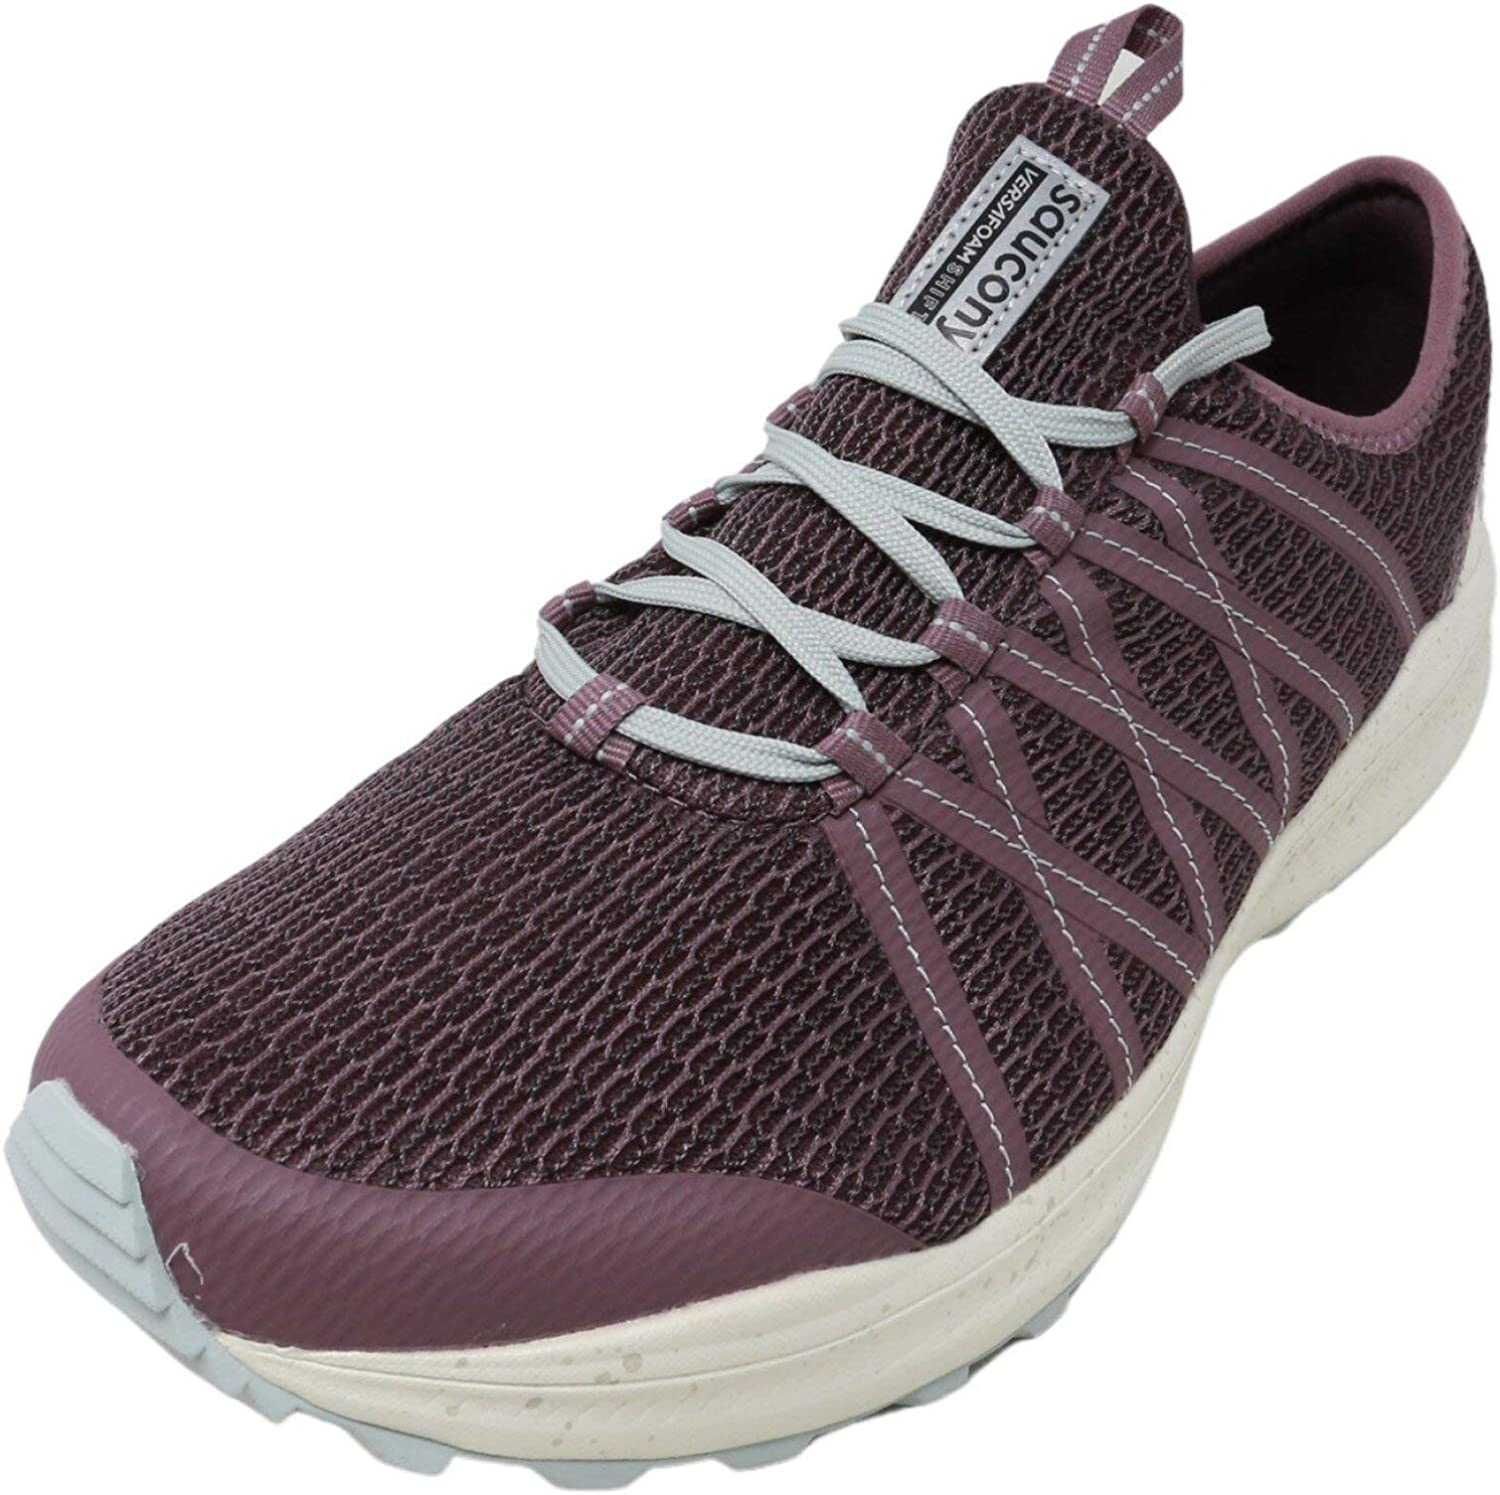 Saucony Womens Versafoam Shift Performance Running Shoes Fitness Max 63% OFF shopping